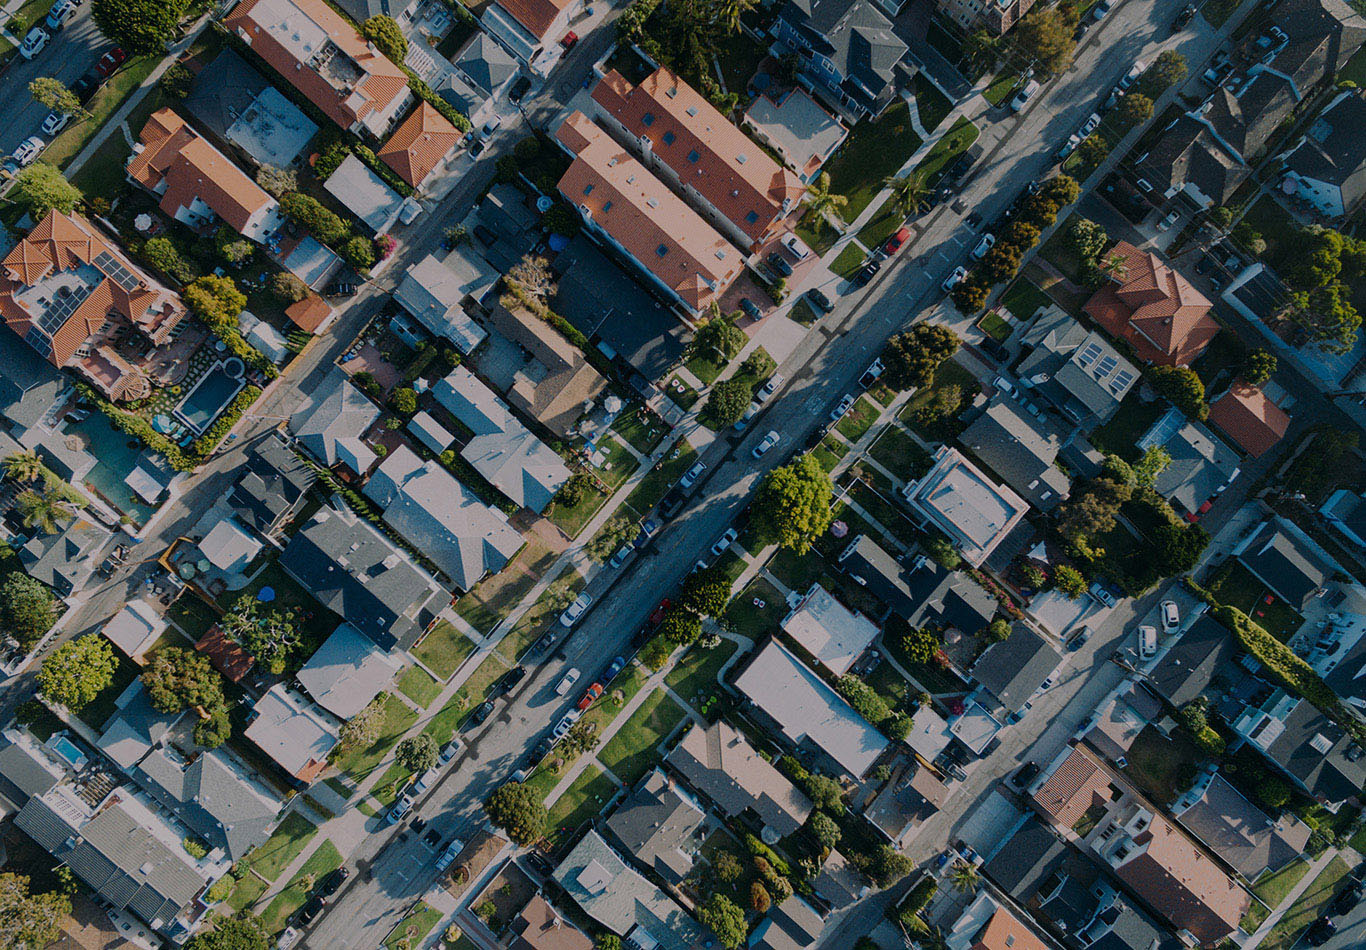 Aerial view of a neighborhood. There are a multiple cars in the street